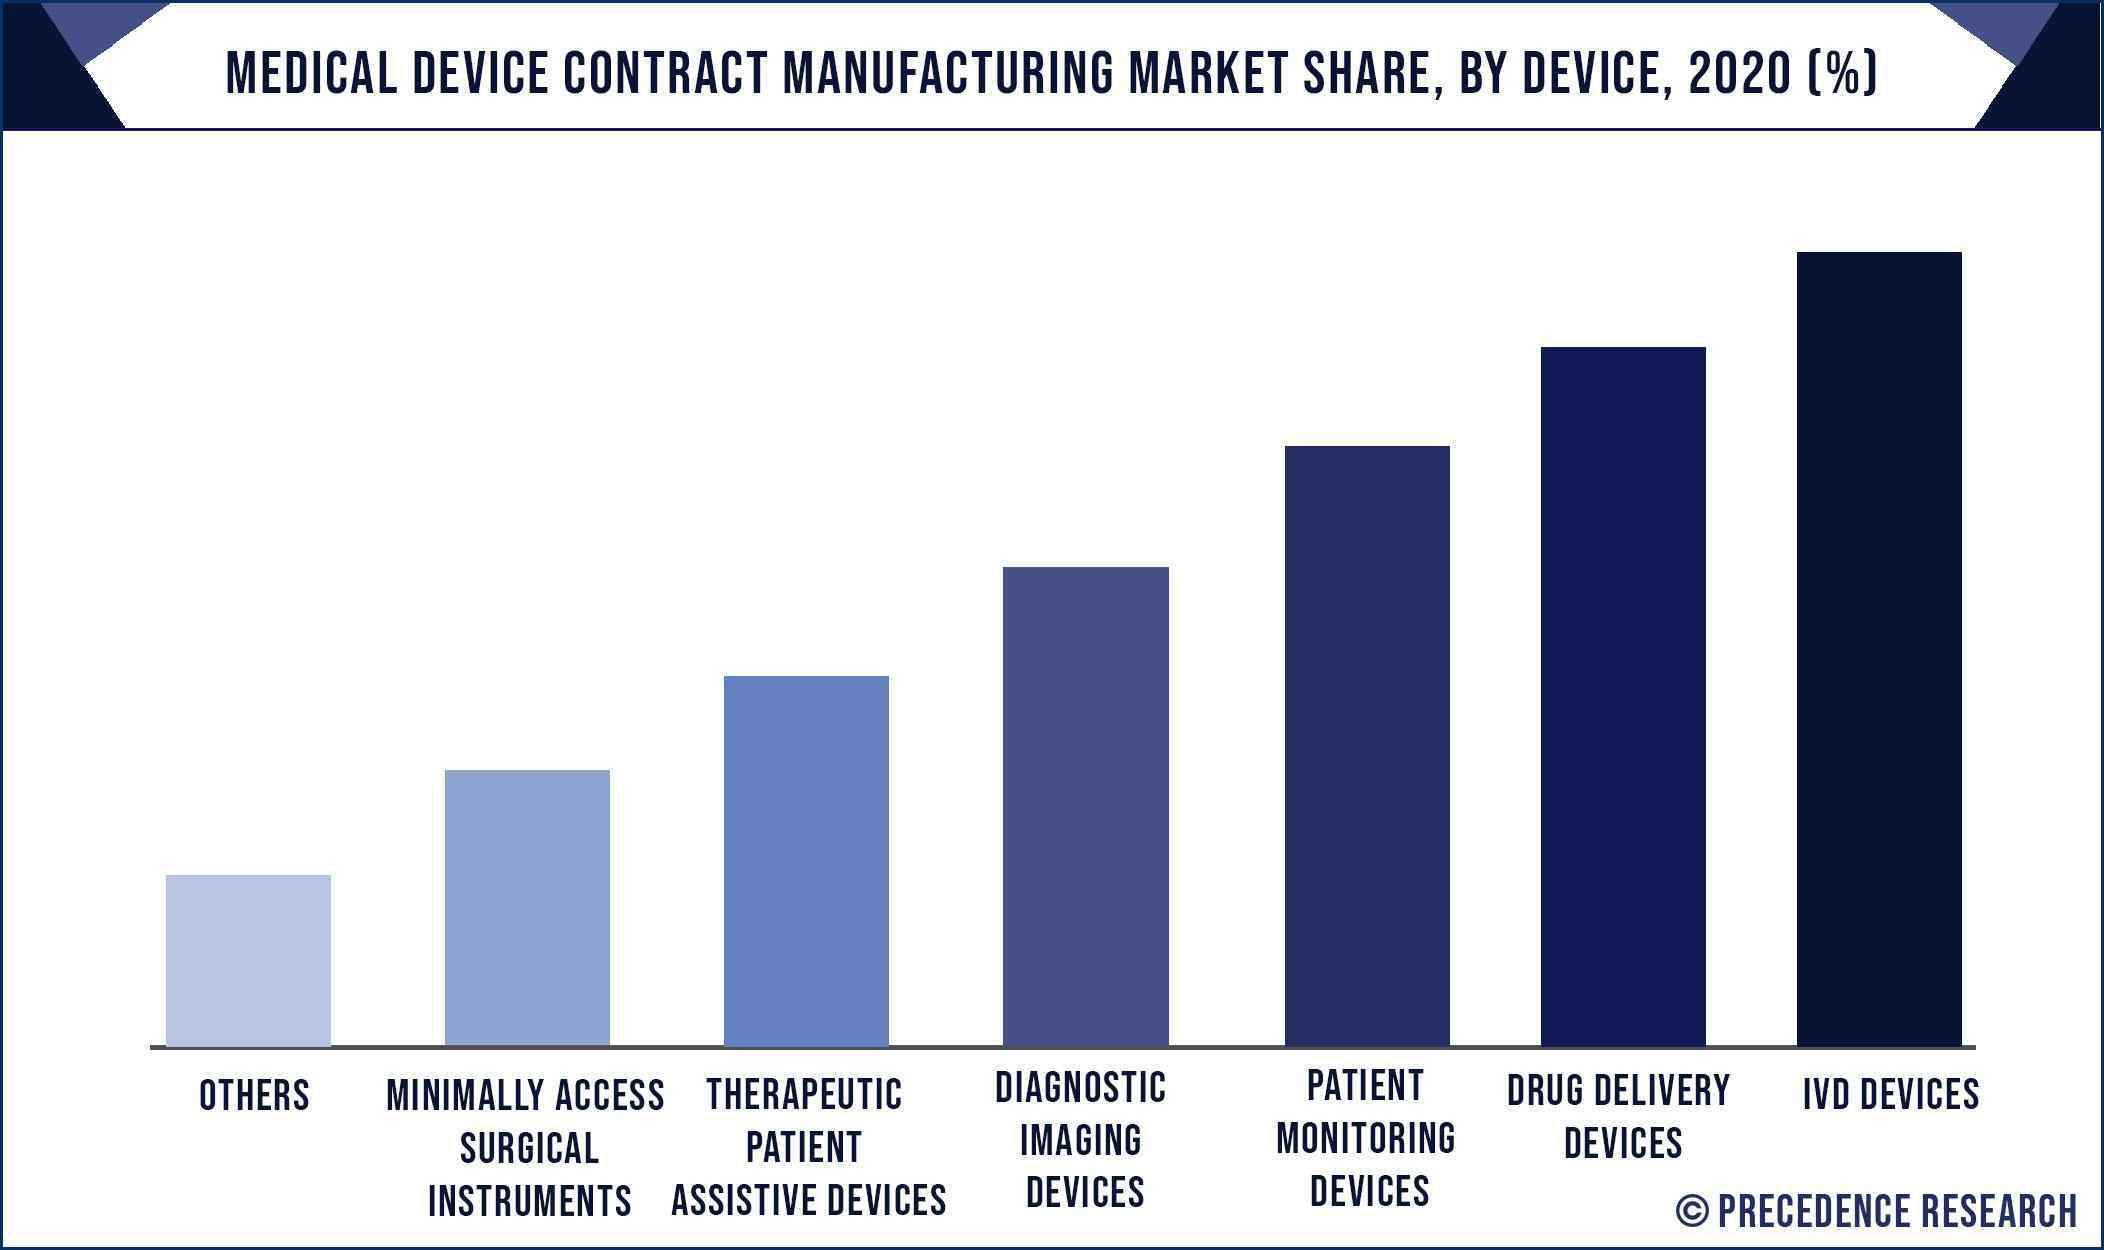 Medical Device Contract Manufacturing Market Share, By Device, 2020 (%)